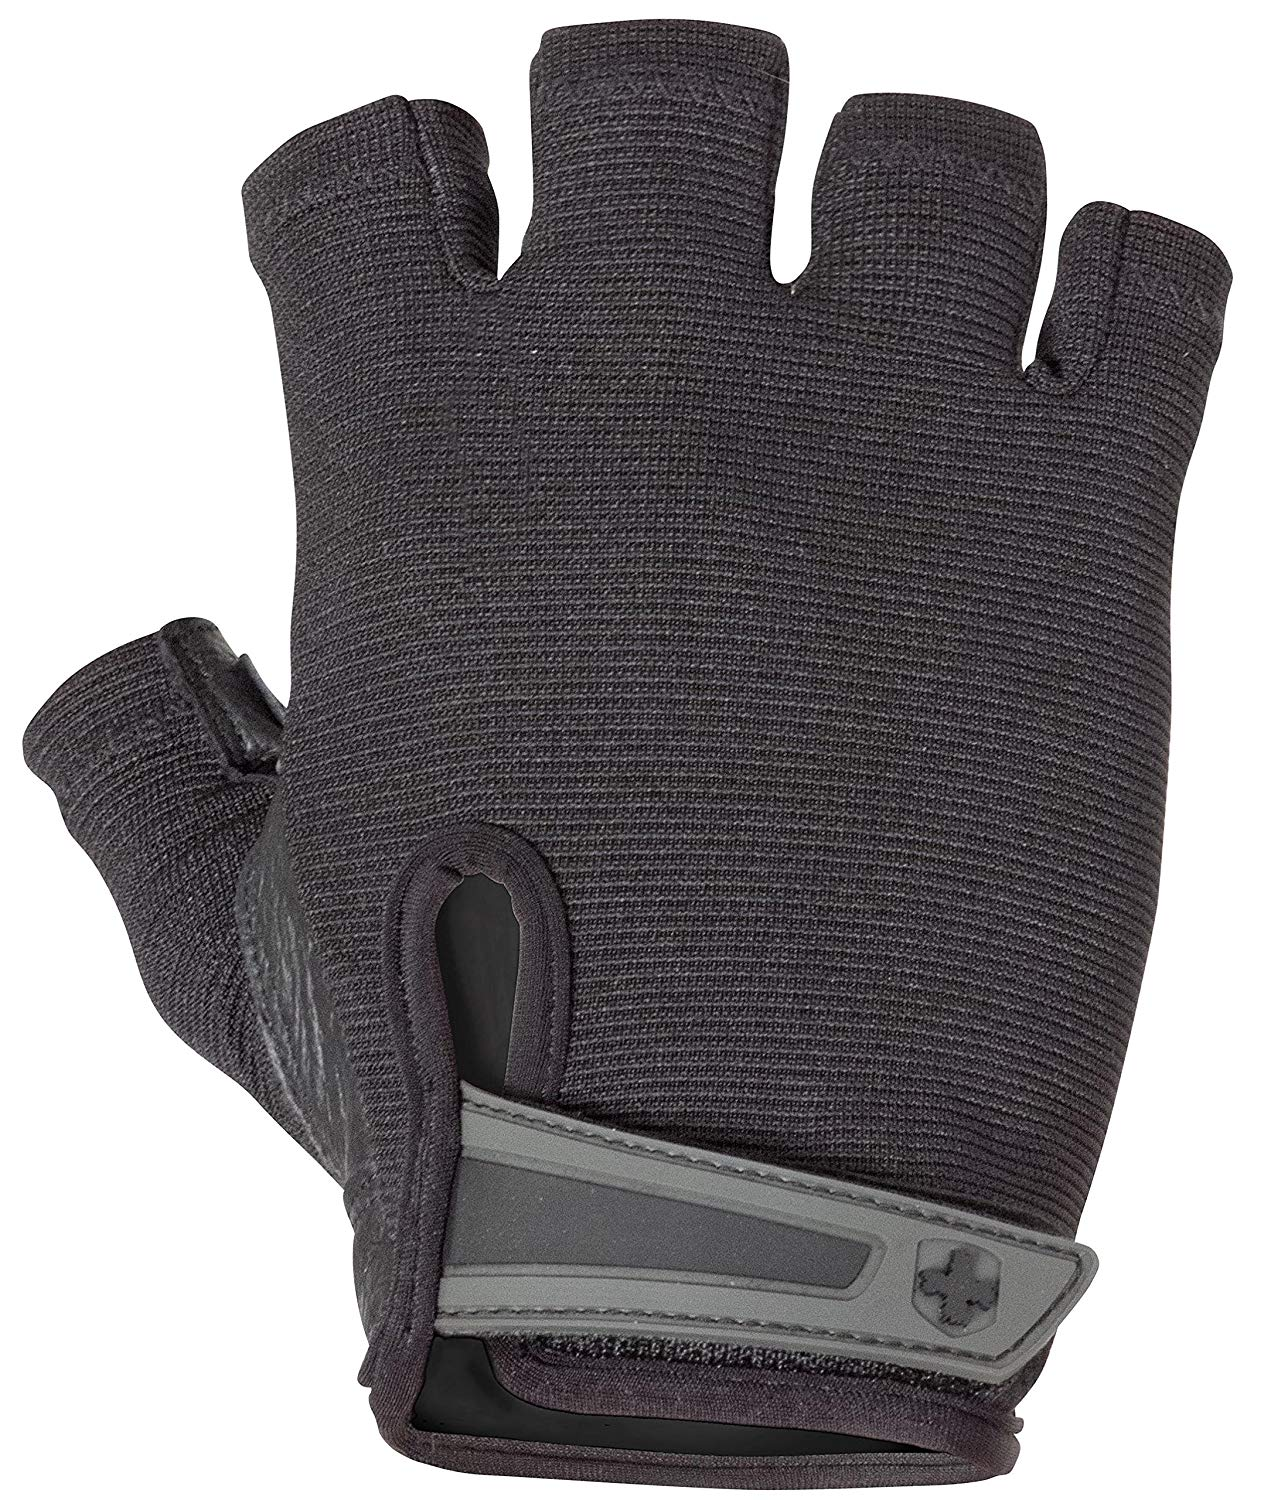 Harbinger Power Weightlifting Glove